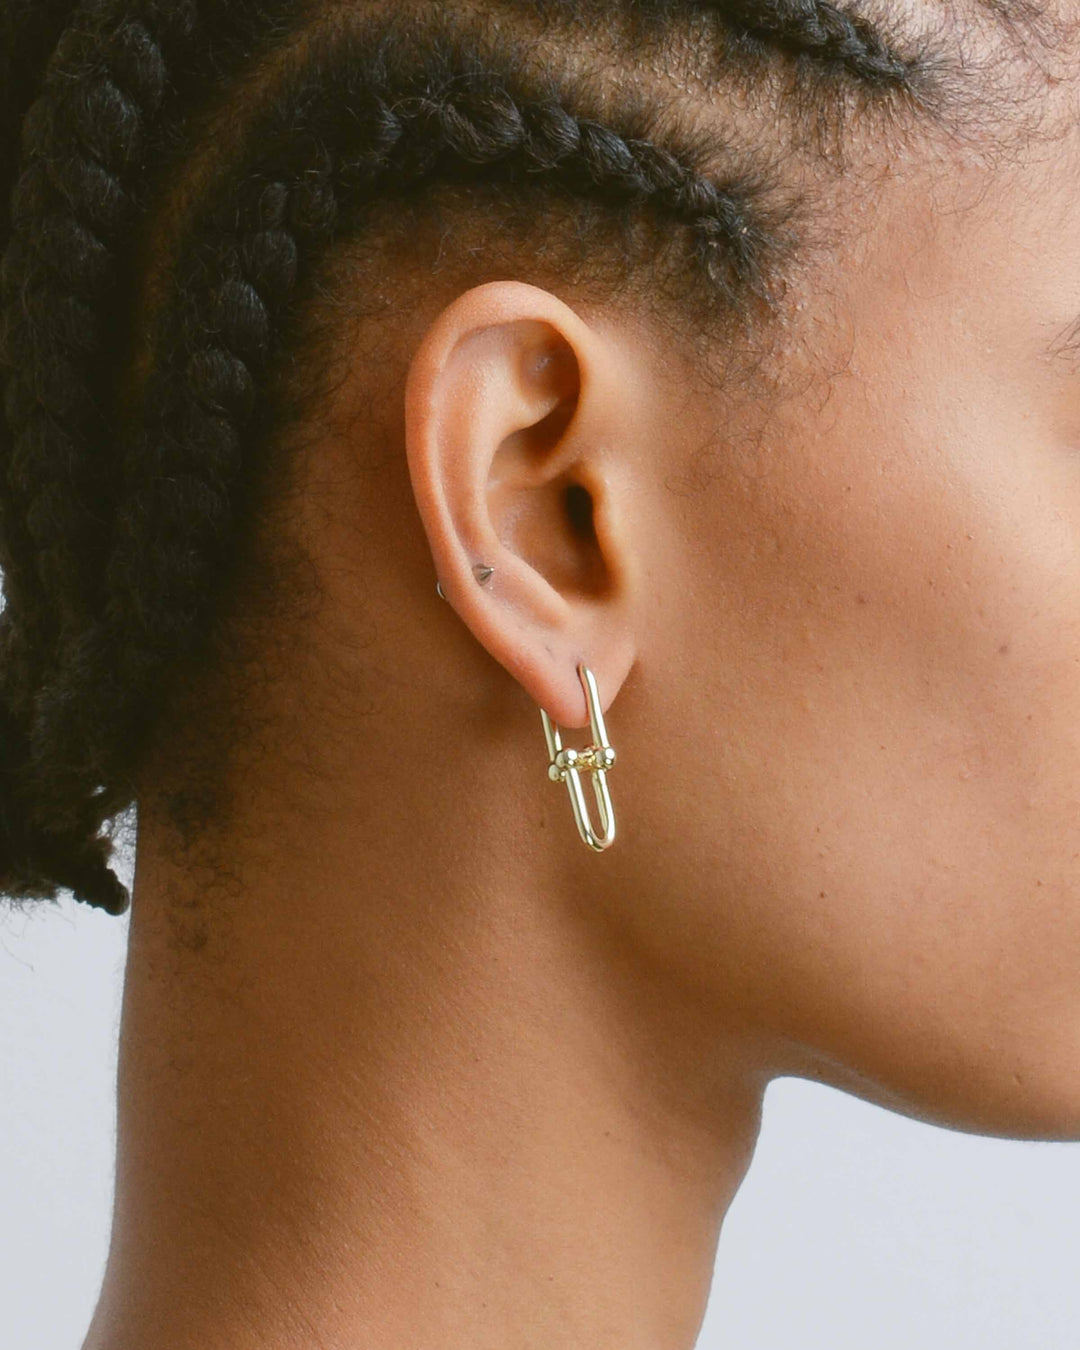 Gold Barbell Earrings